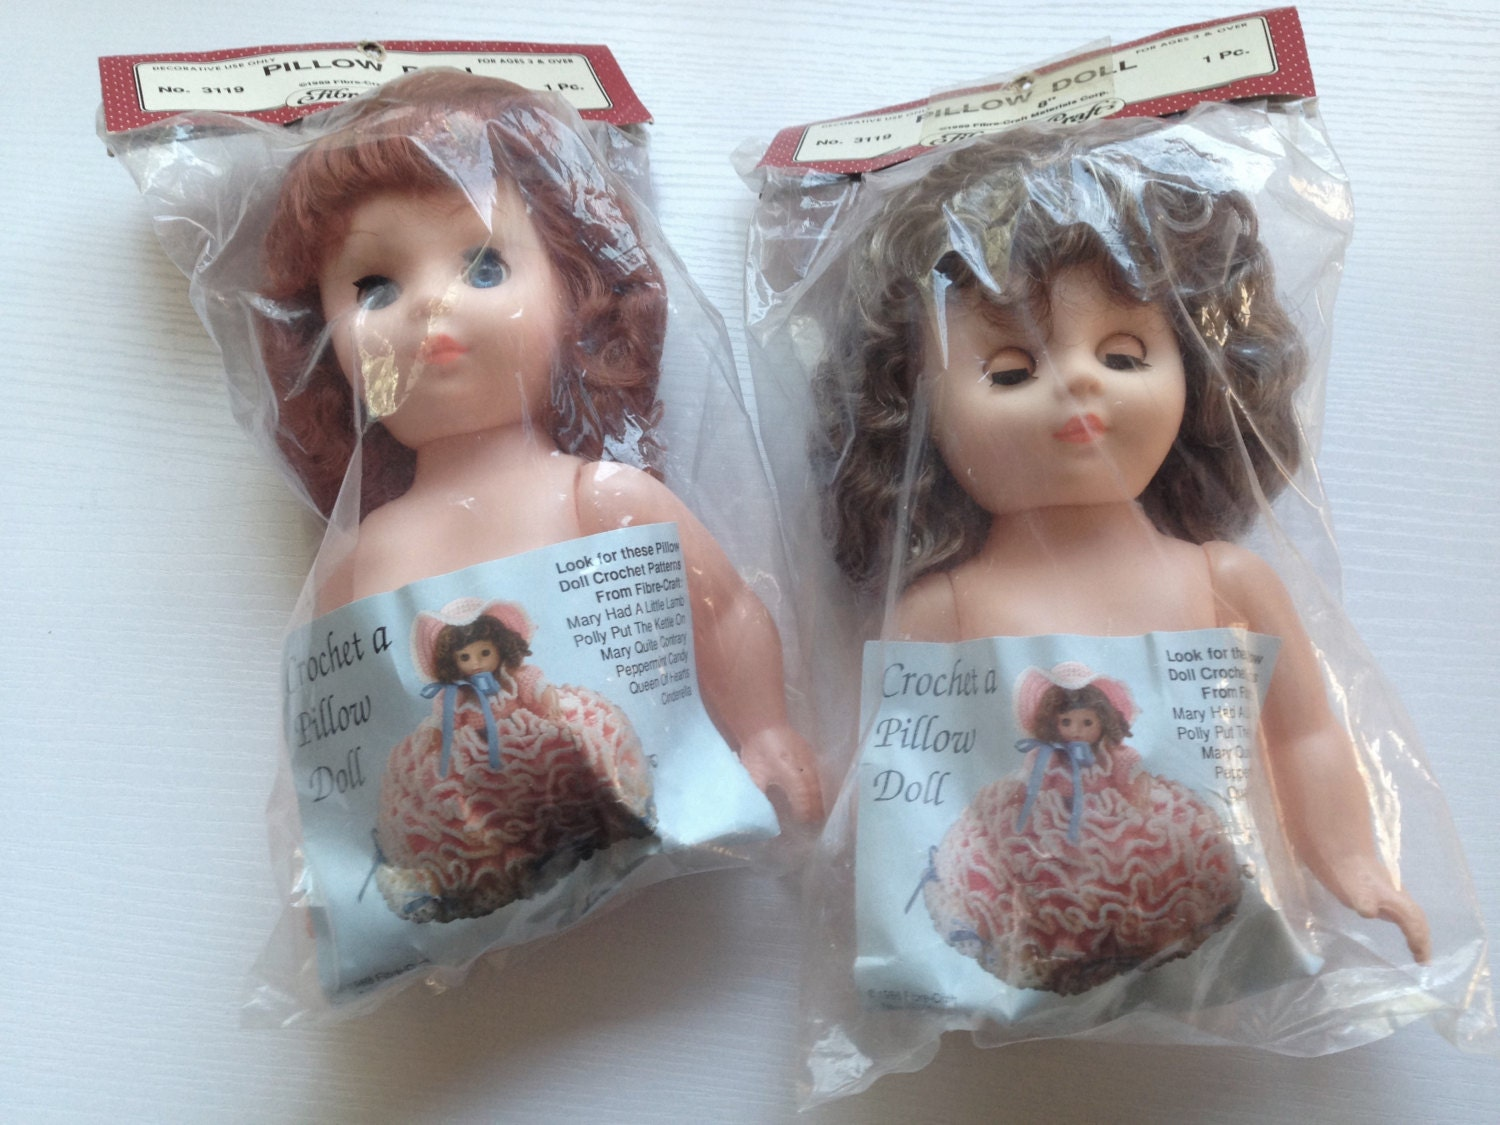 1989 fibre craft vinyl half dolls for crocheted pillow dolls for Fibre craft 18 inch doll